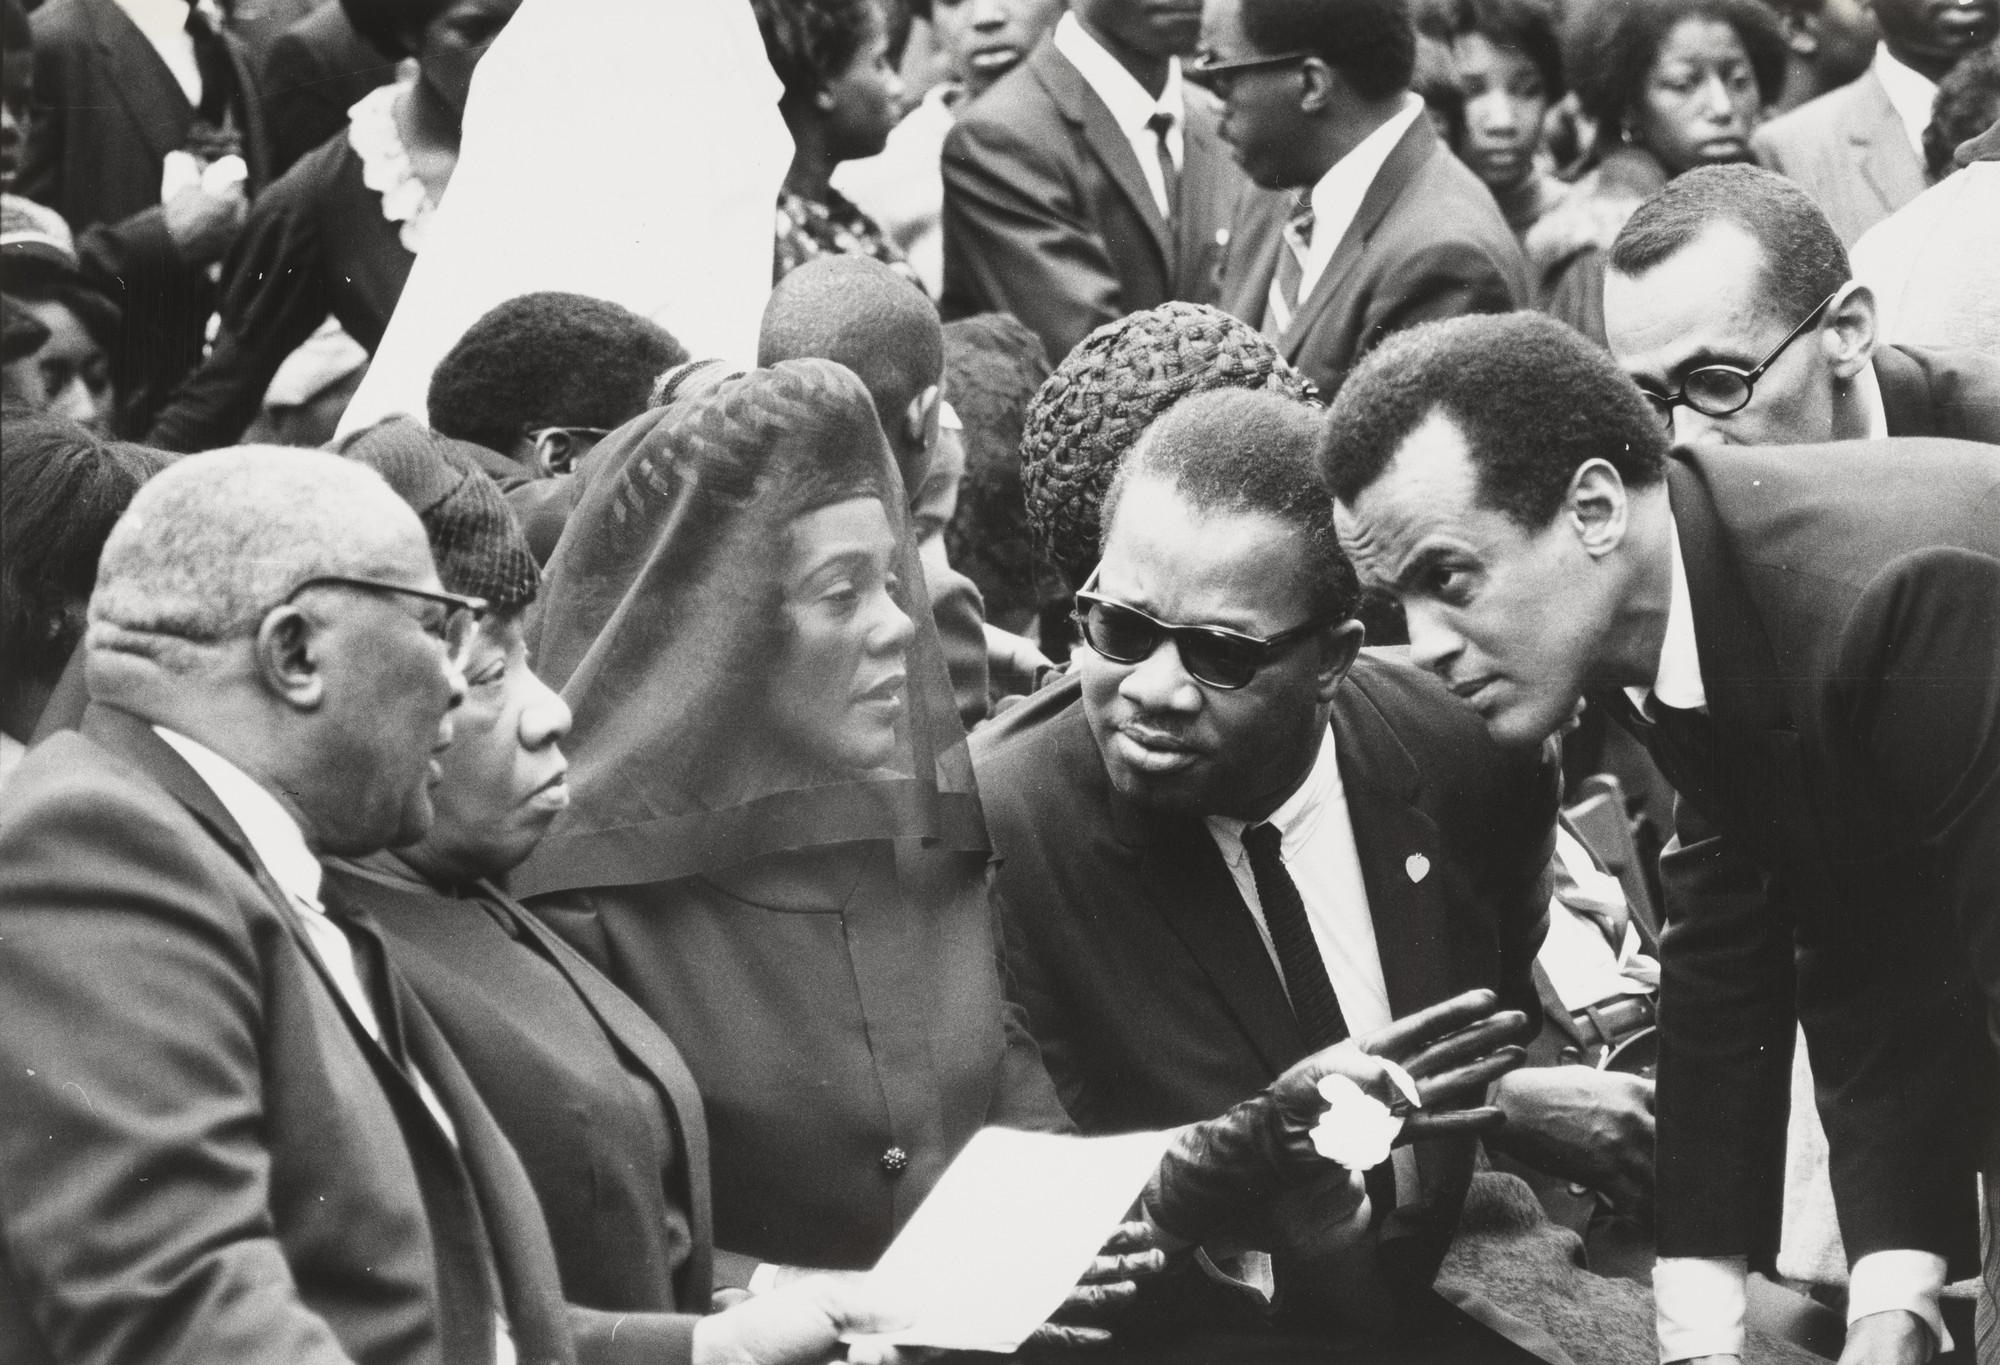 Don Hogan Charles/The New York Times. Funeral of Dr. Martin Luther King, Jr.. April 9, 1968